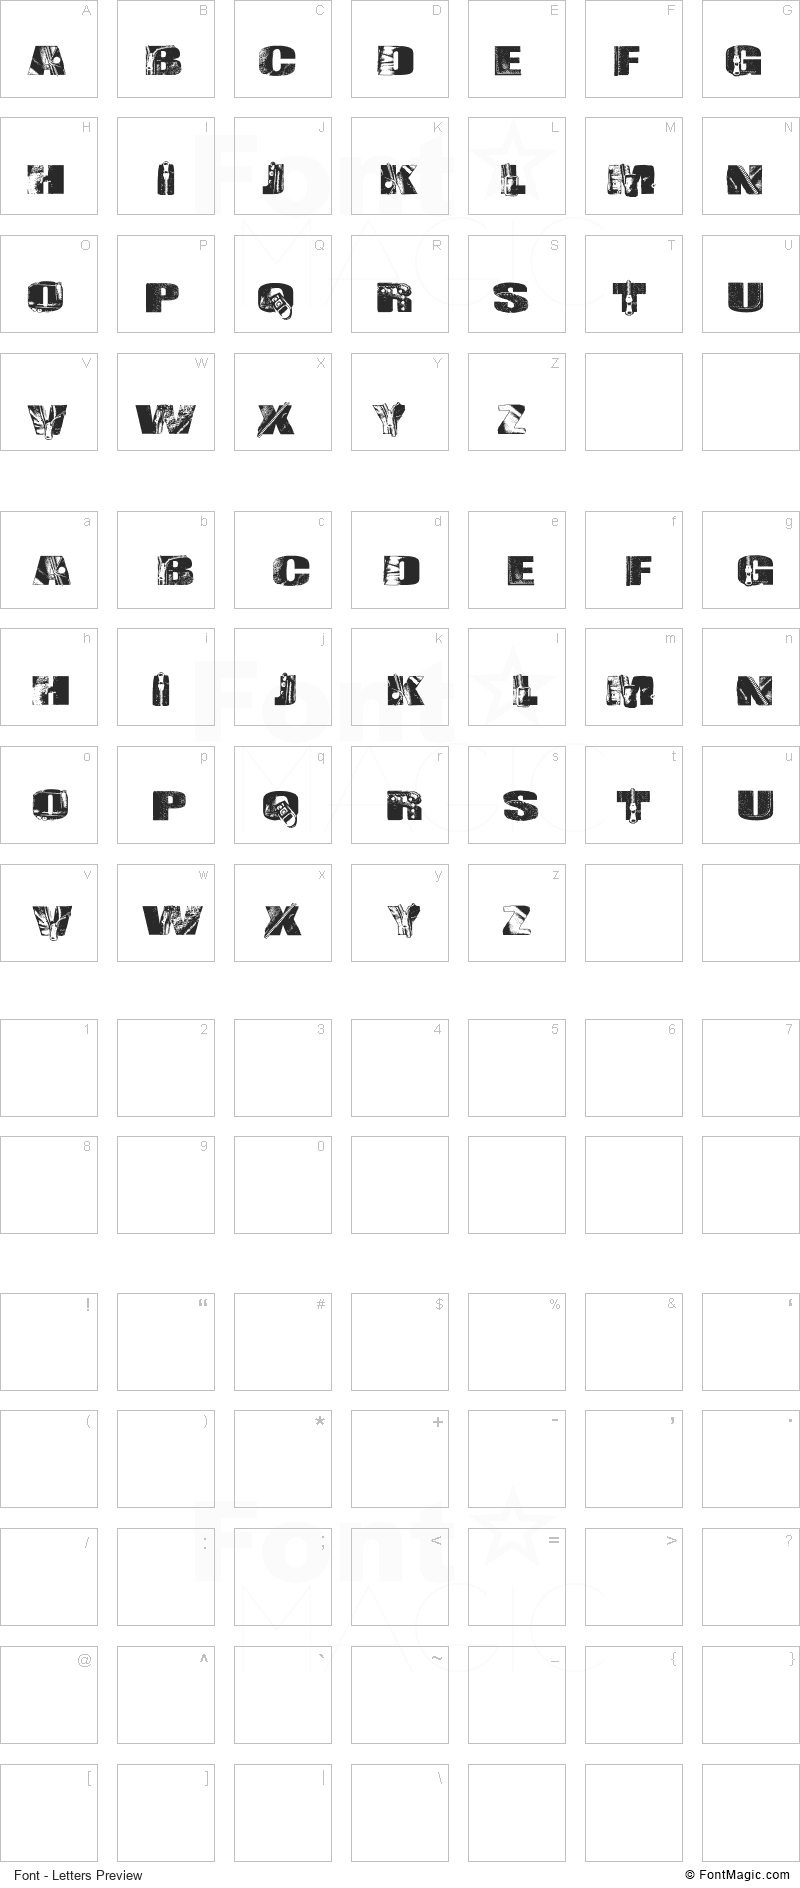 Leather Font - All Latters Preview Chart